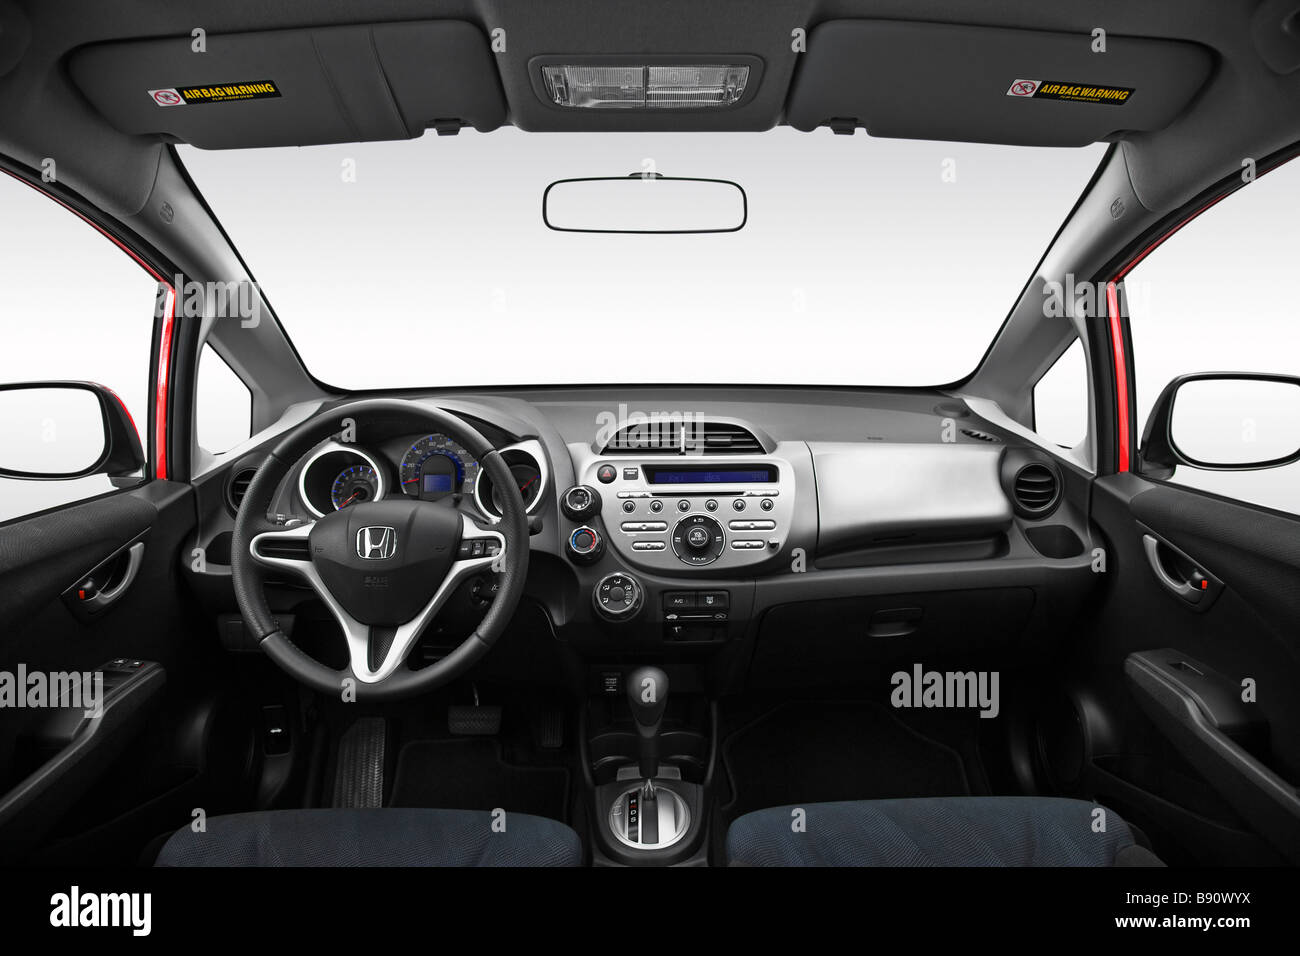 2009 honda fit sport in red dashboard center console gear shifter view